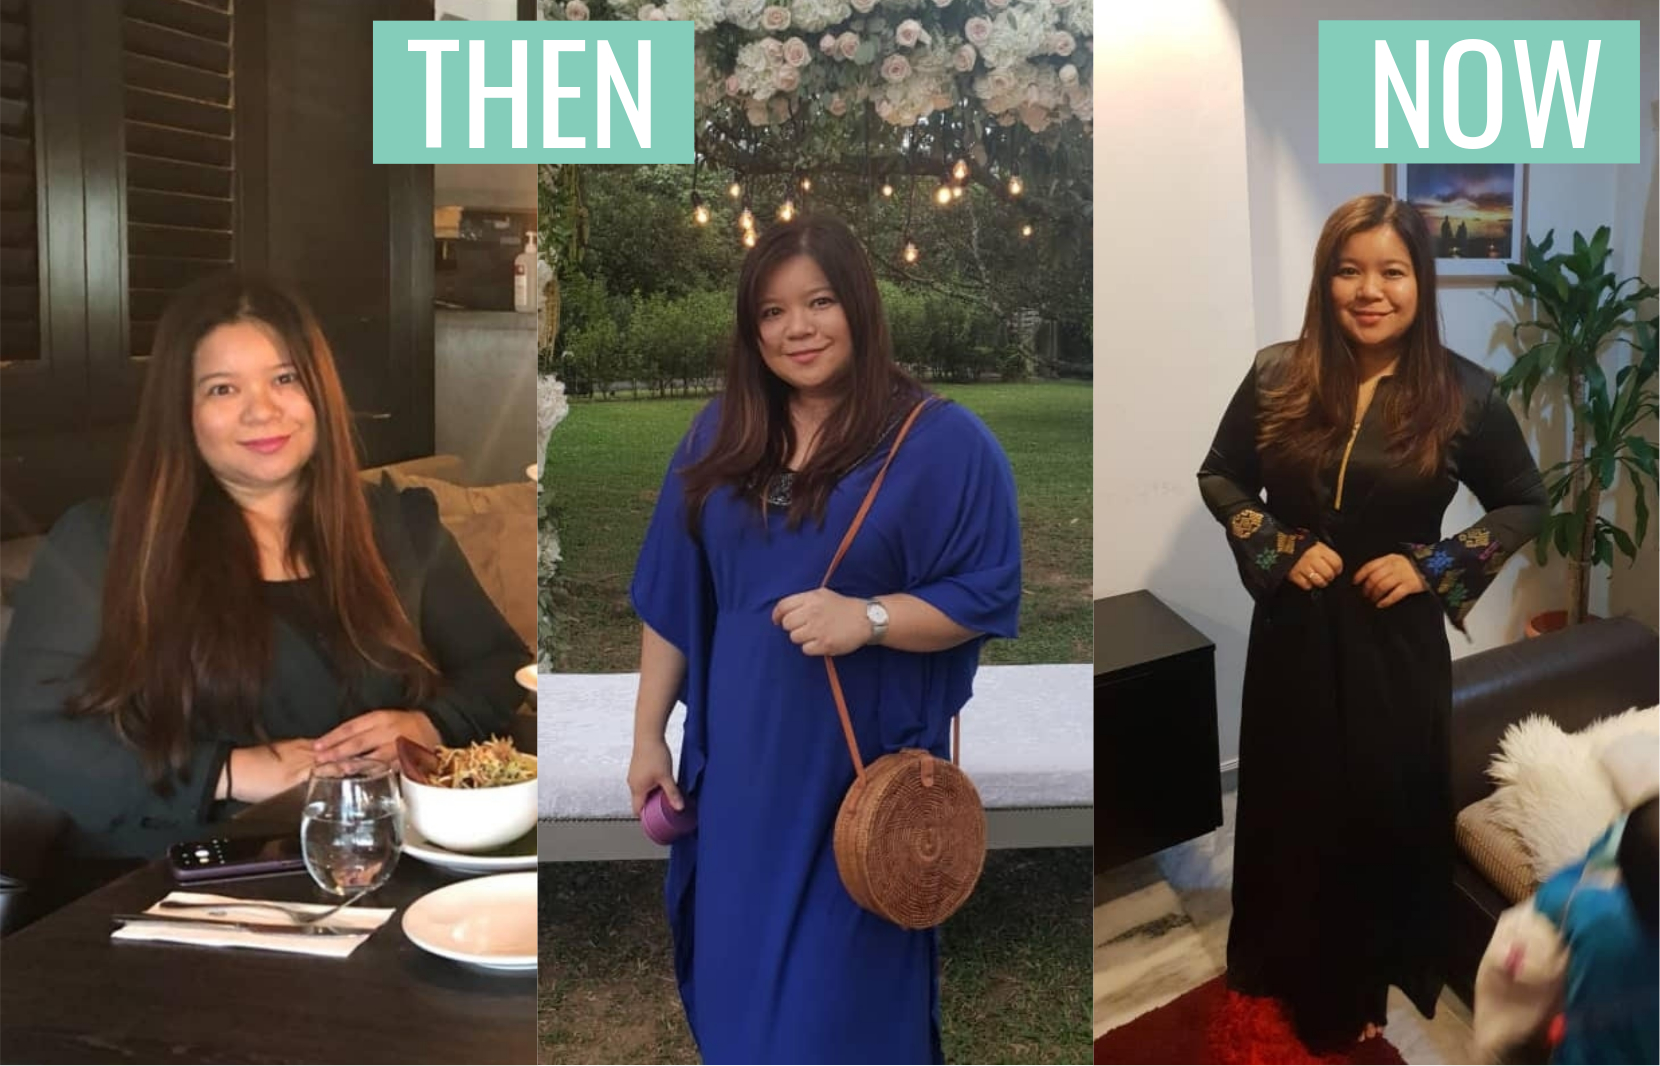 """I Lost 5kg In 5 Weeks"" — How Nourish, Heal, Glow Helped Me Lose Weight Sustainably"